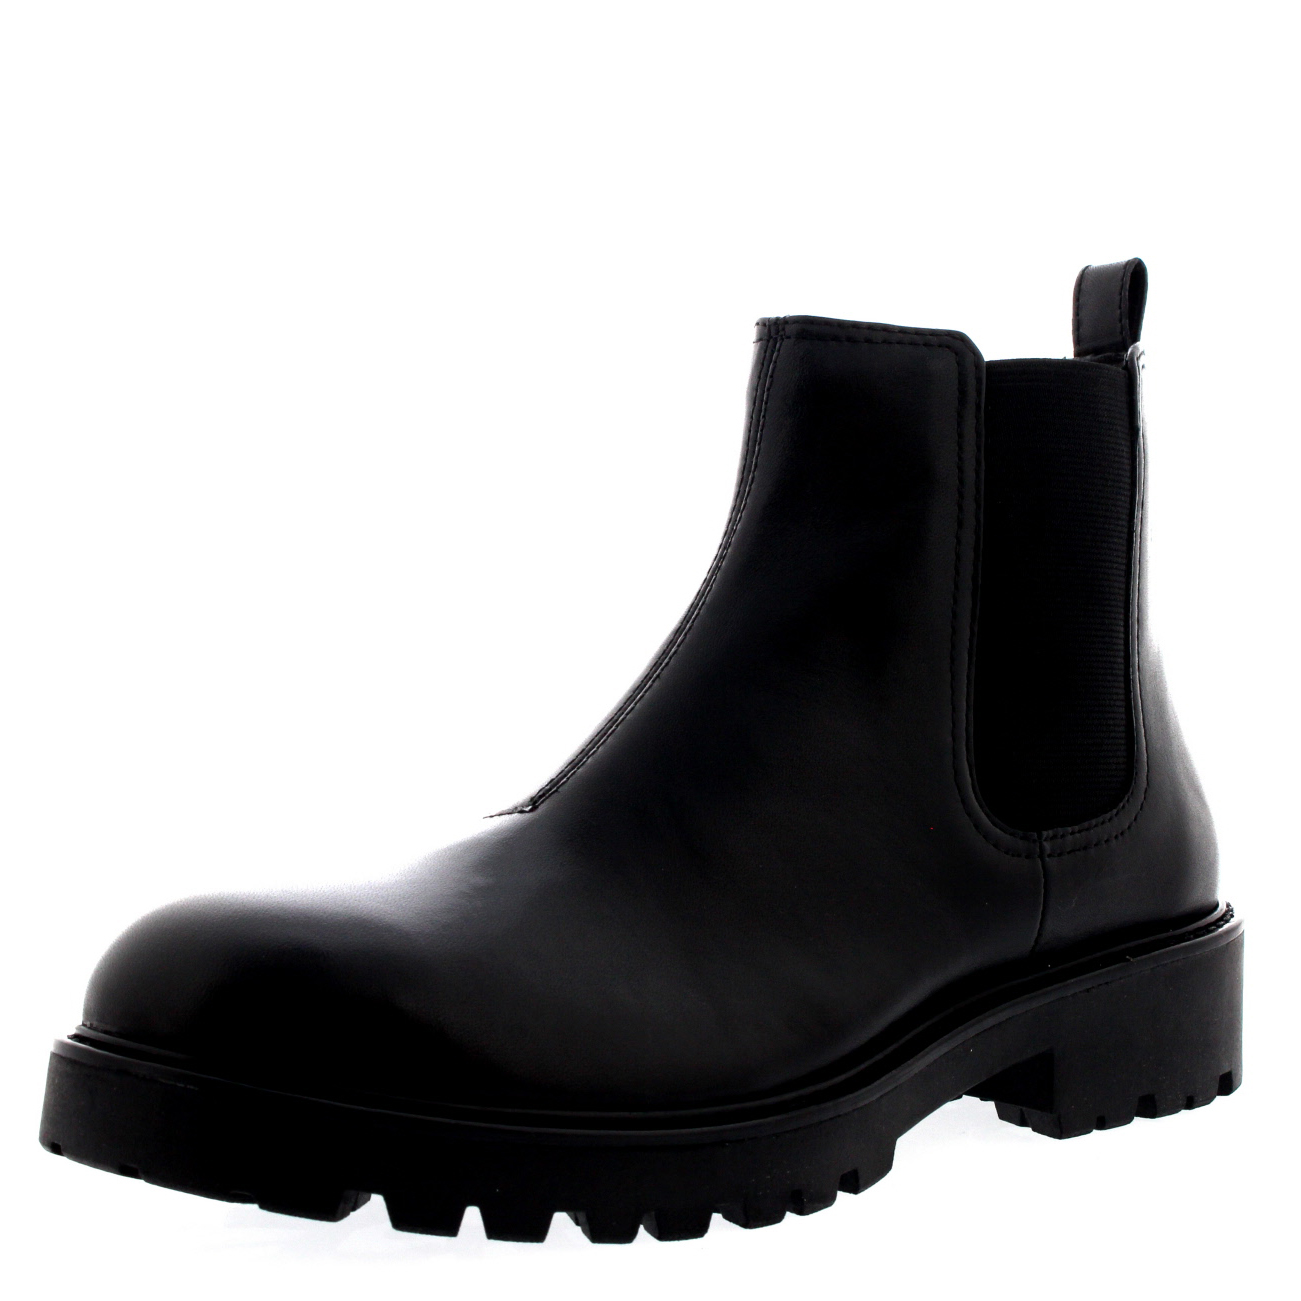 Wonderful Chelsea Boots Women Black With New Pictures | Sobatapk.com